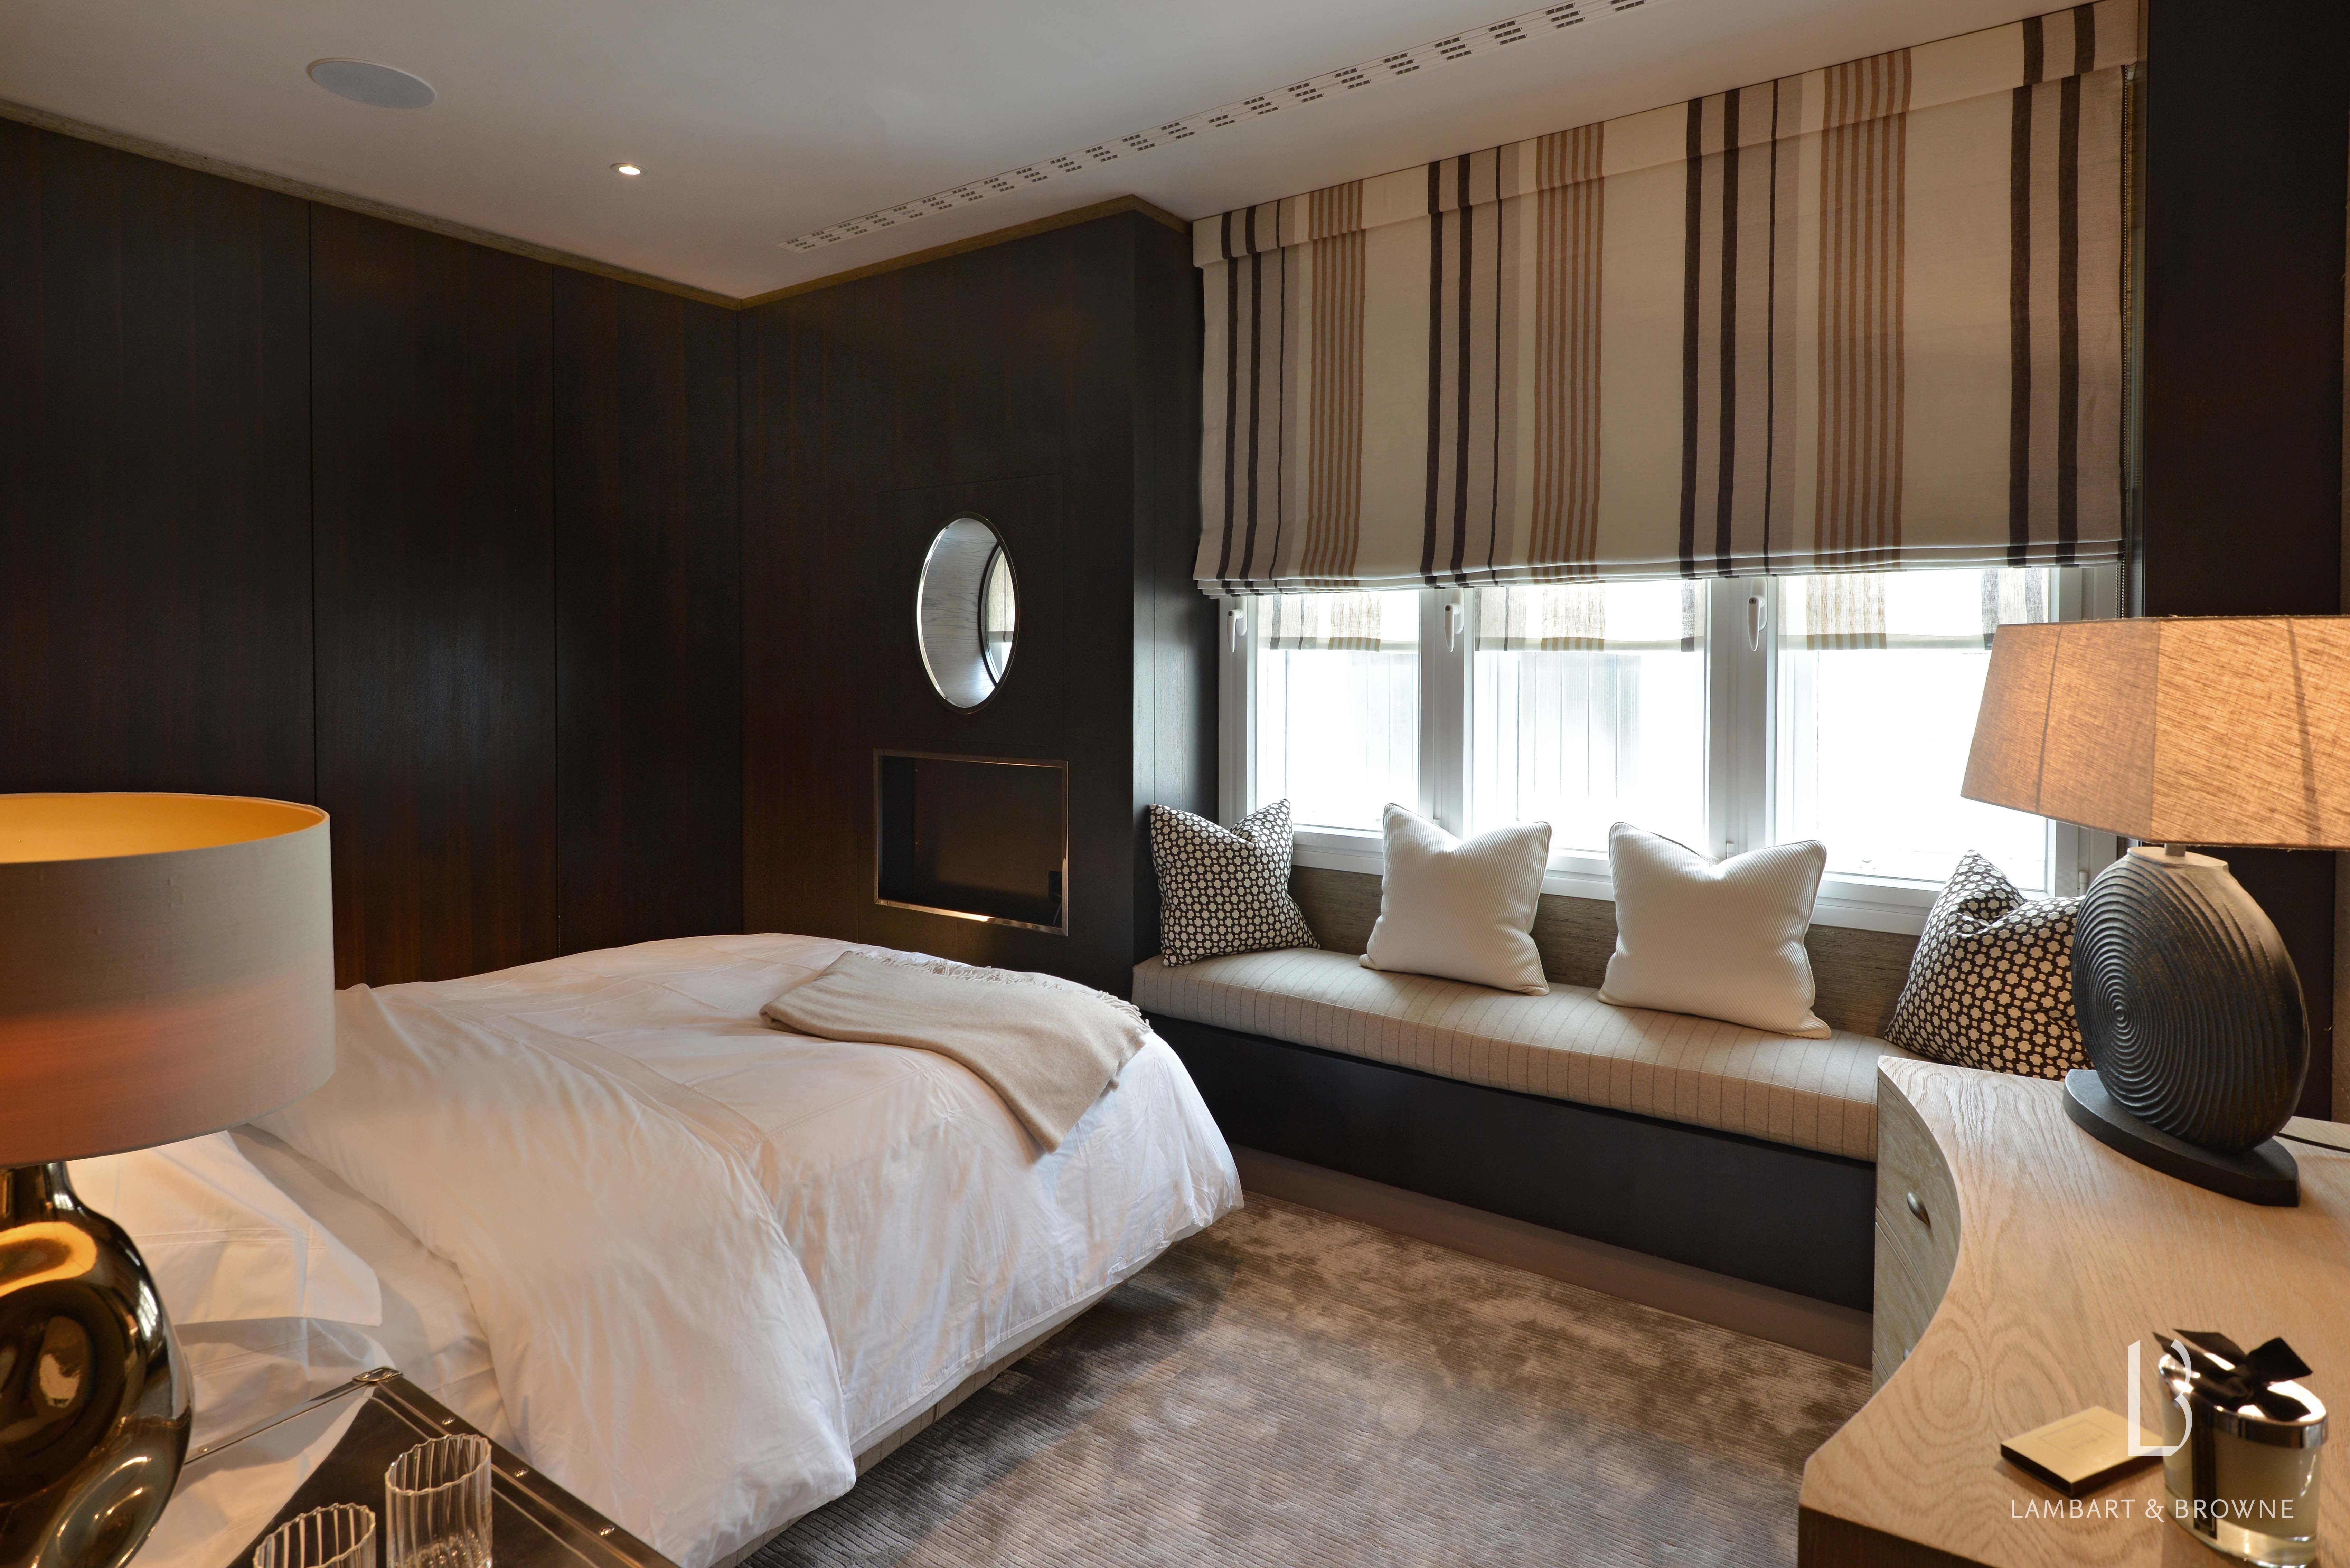 Bed near window design  lambart and browne interior design  photograph of our project in